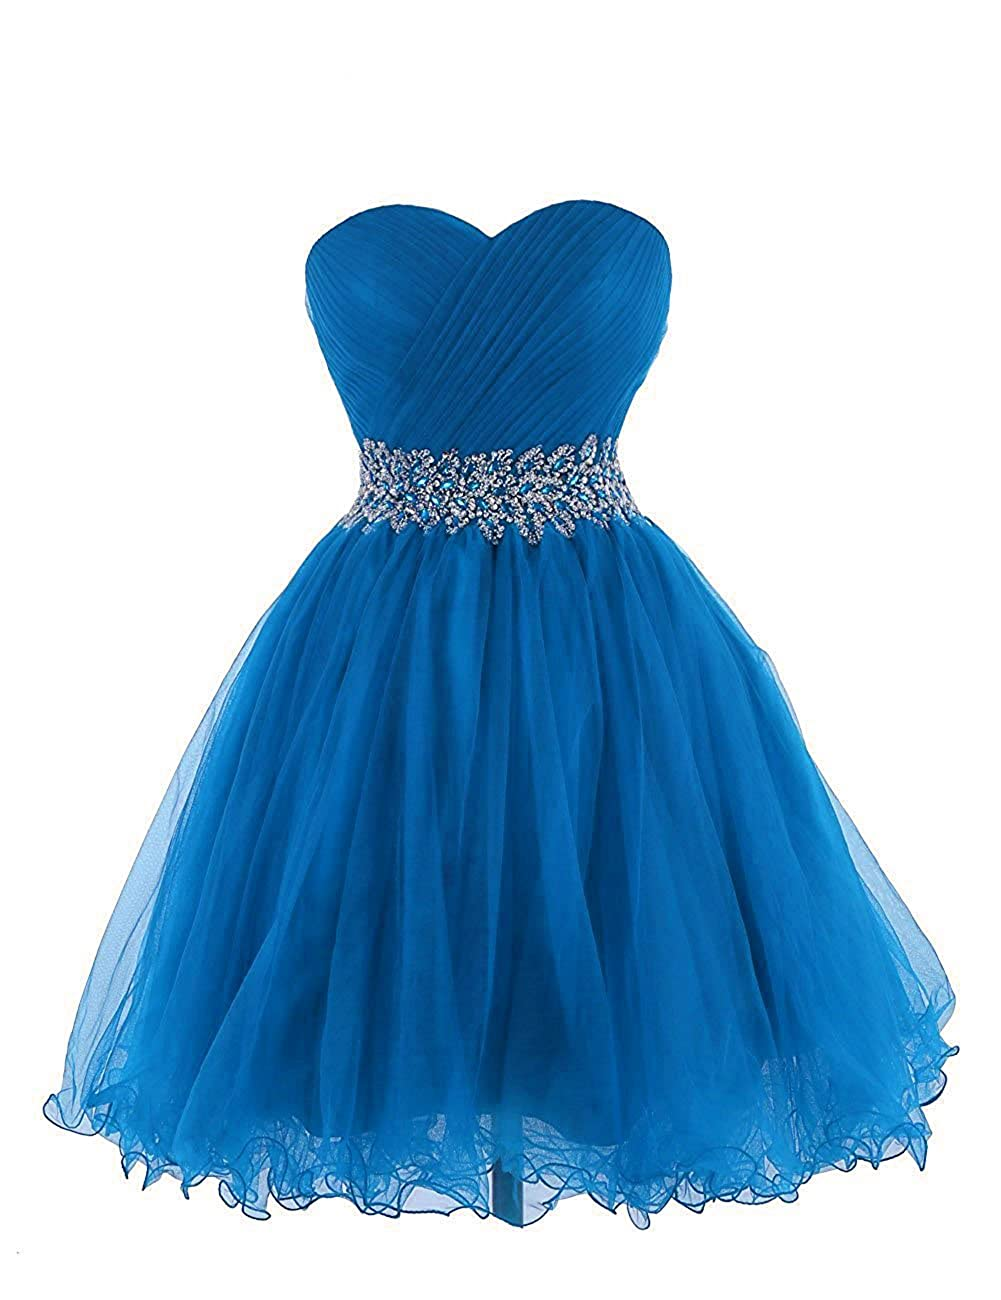 Uther Tulle Homecoming Prom Dresses Strapless Short Bridesmaid Dress Sleeveless Gowns